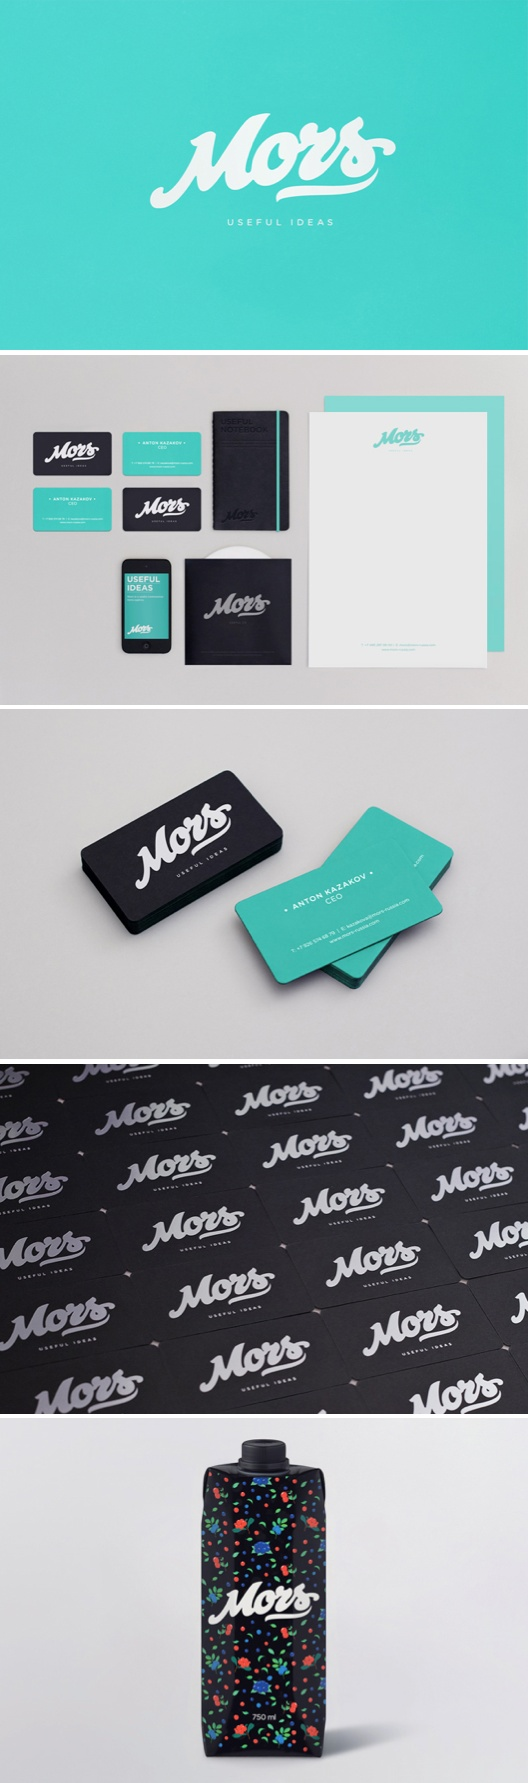 Mors Russia identity #packaging #branding PD